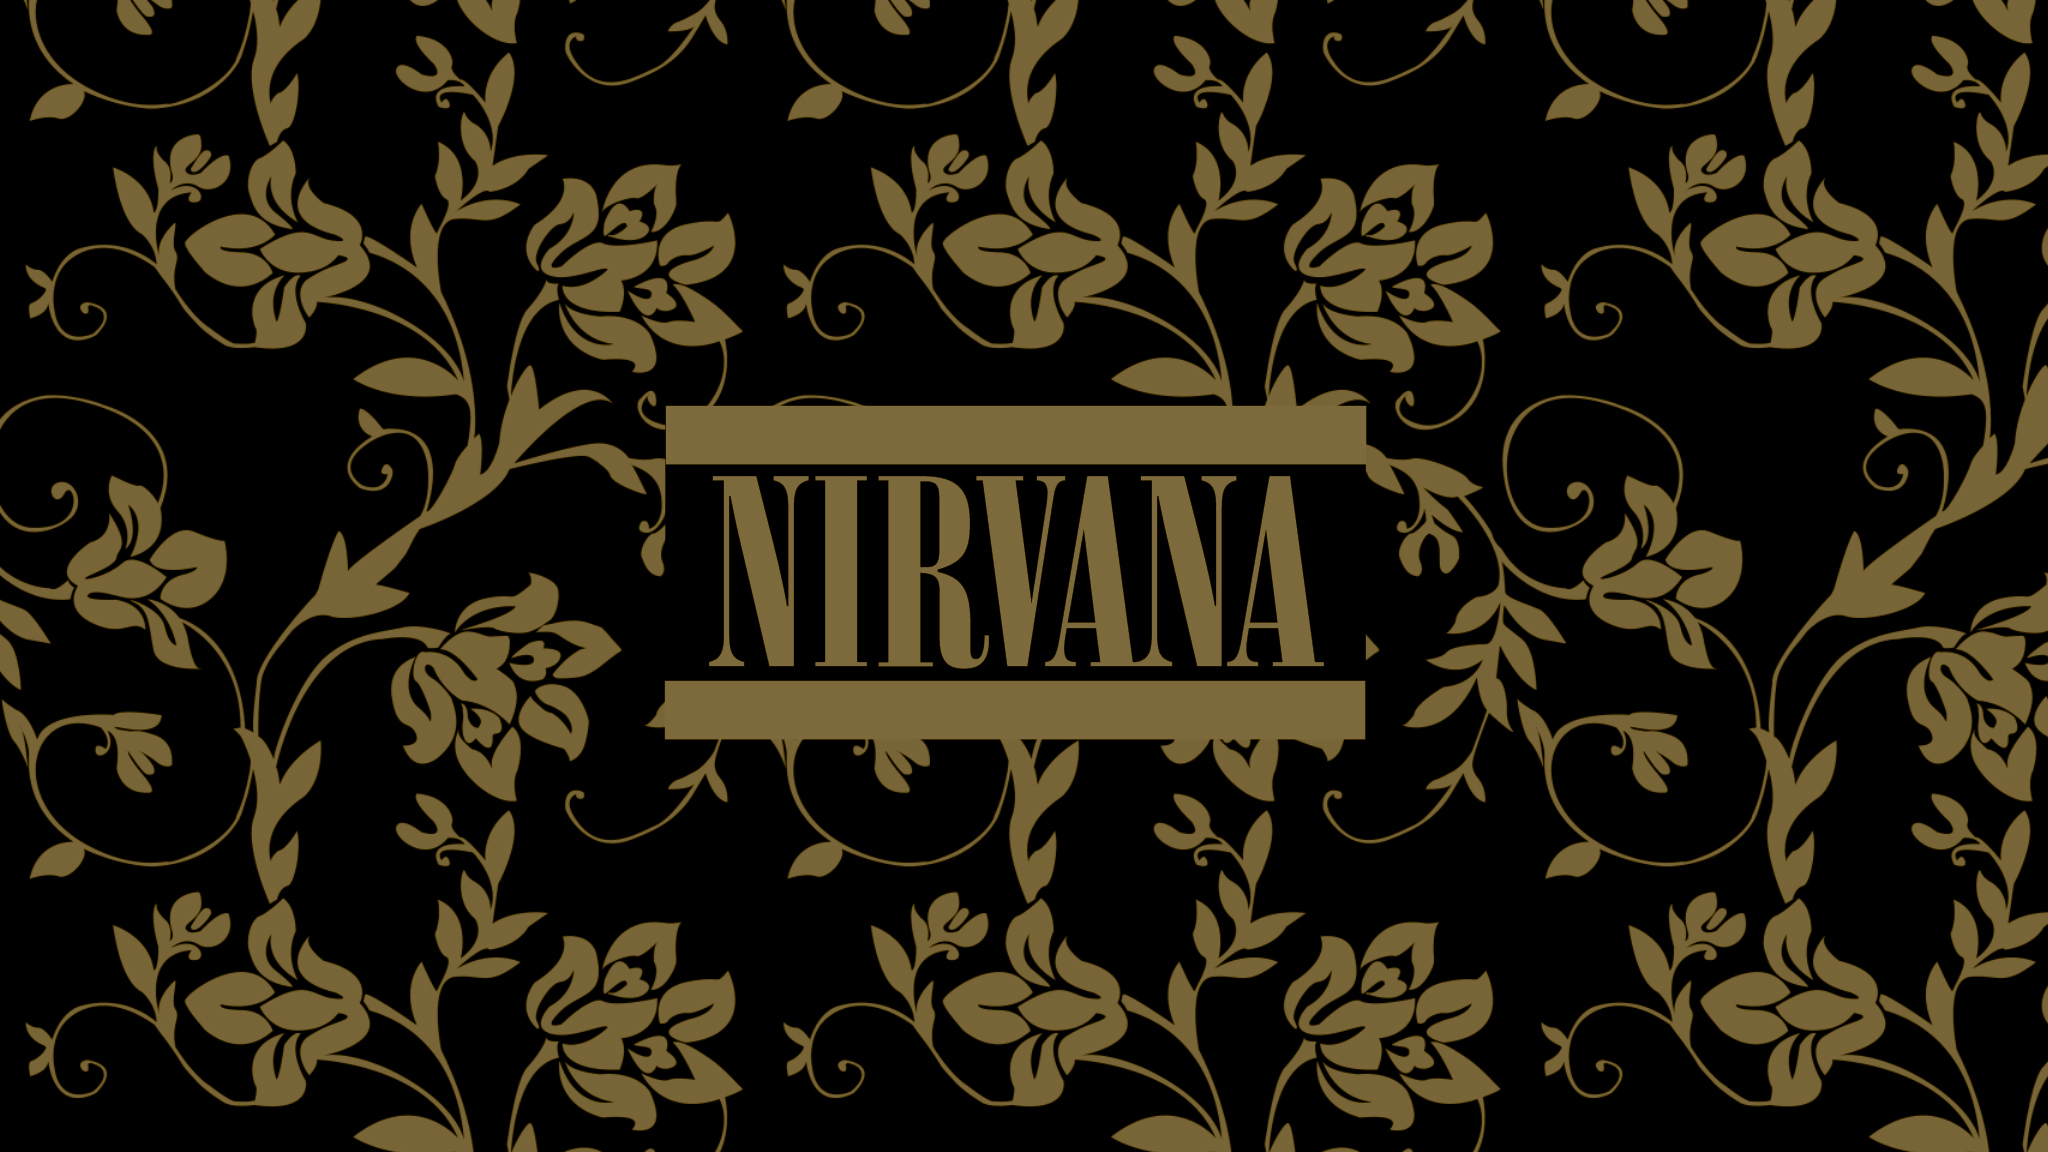 Nirvana Backgrounds Images Frompo 1 2048x1152